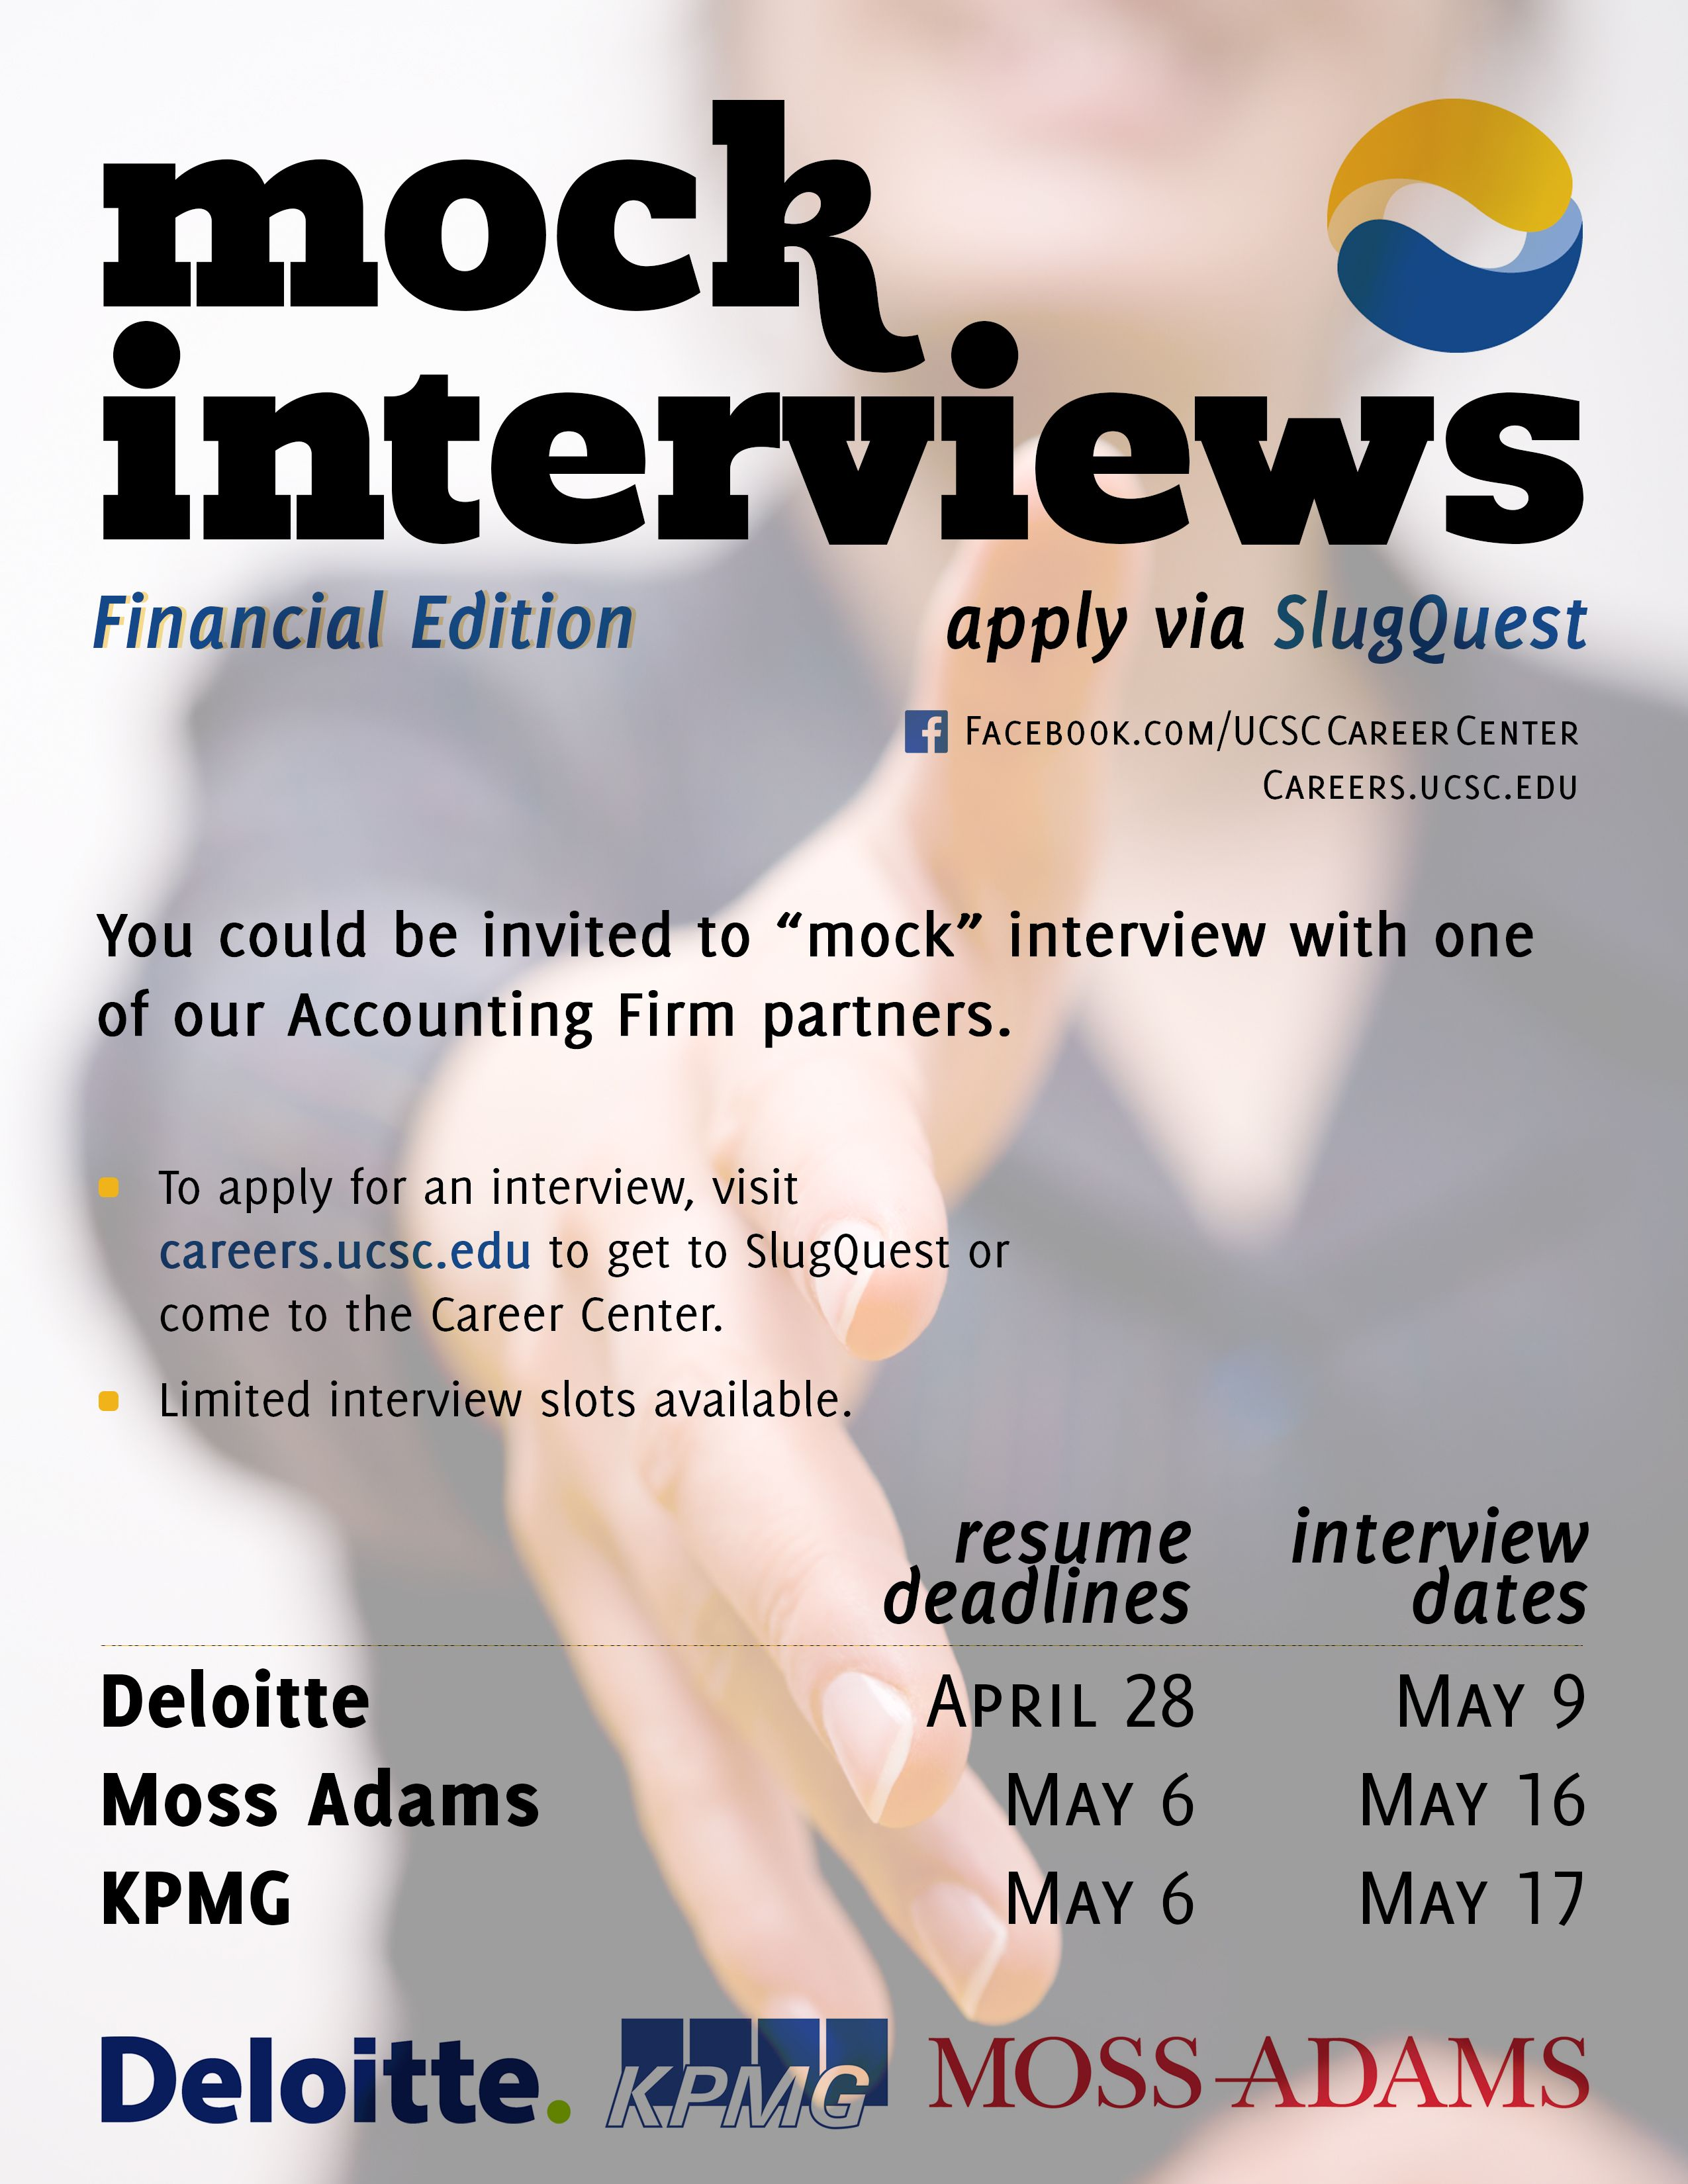 by  diana luu  on campus interviews with deloitte  moss